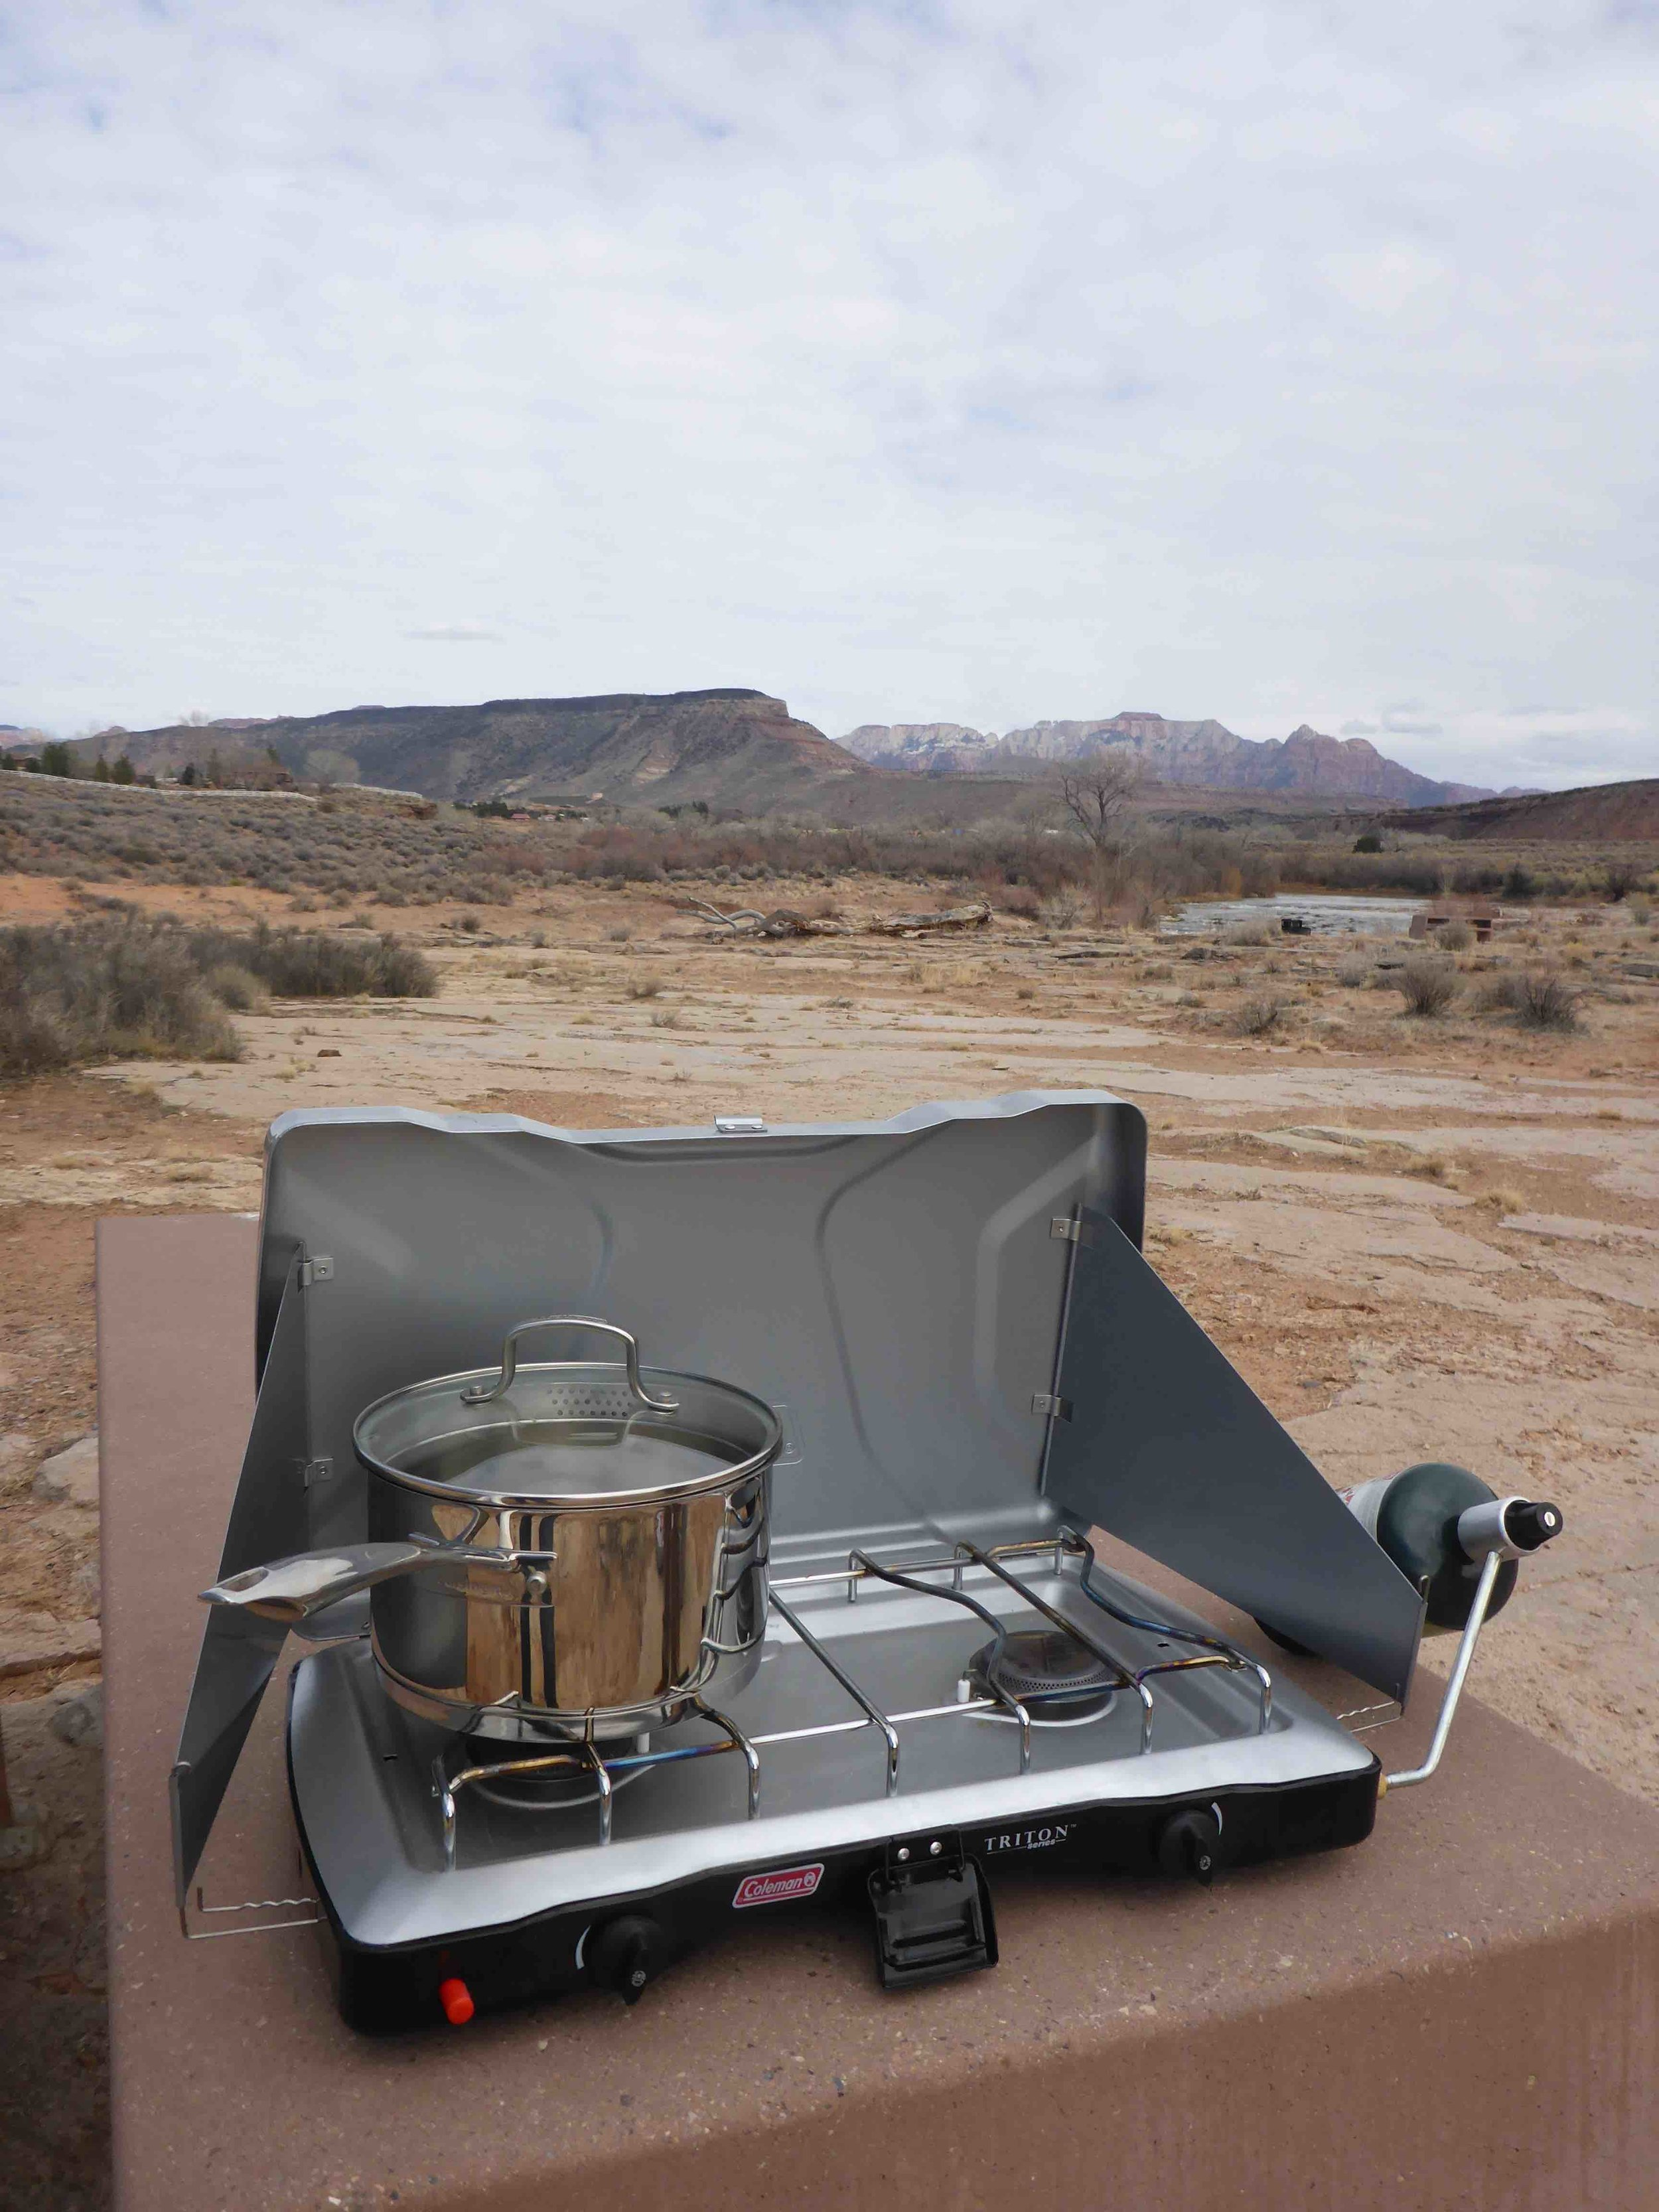 Two burner stove with propane cylinder